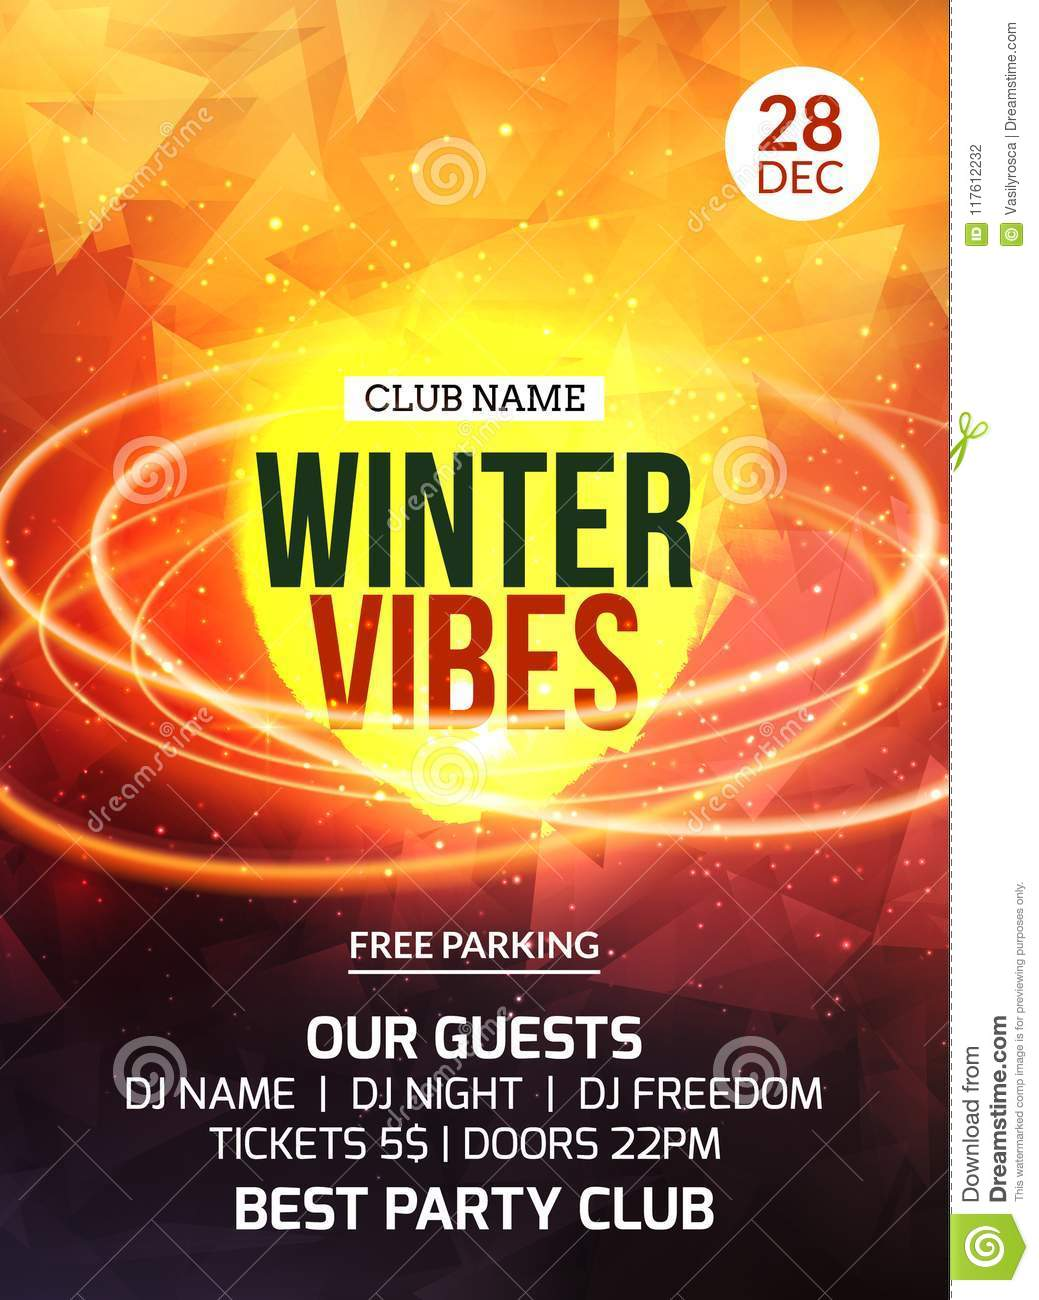 2018 new year winter party celebration flyer design template holiday invitation party poster card for music event in night club